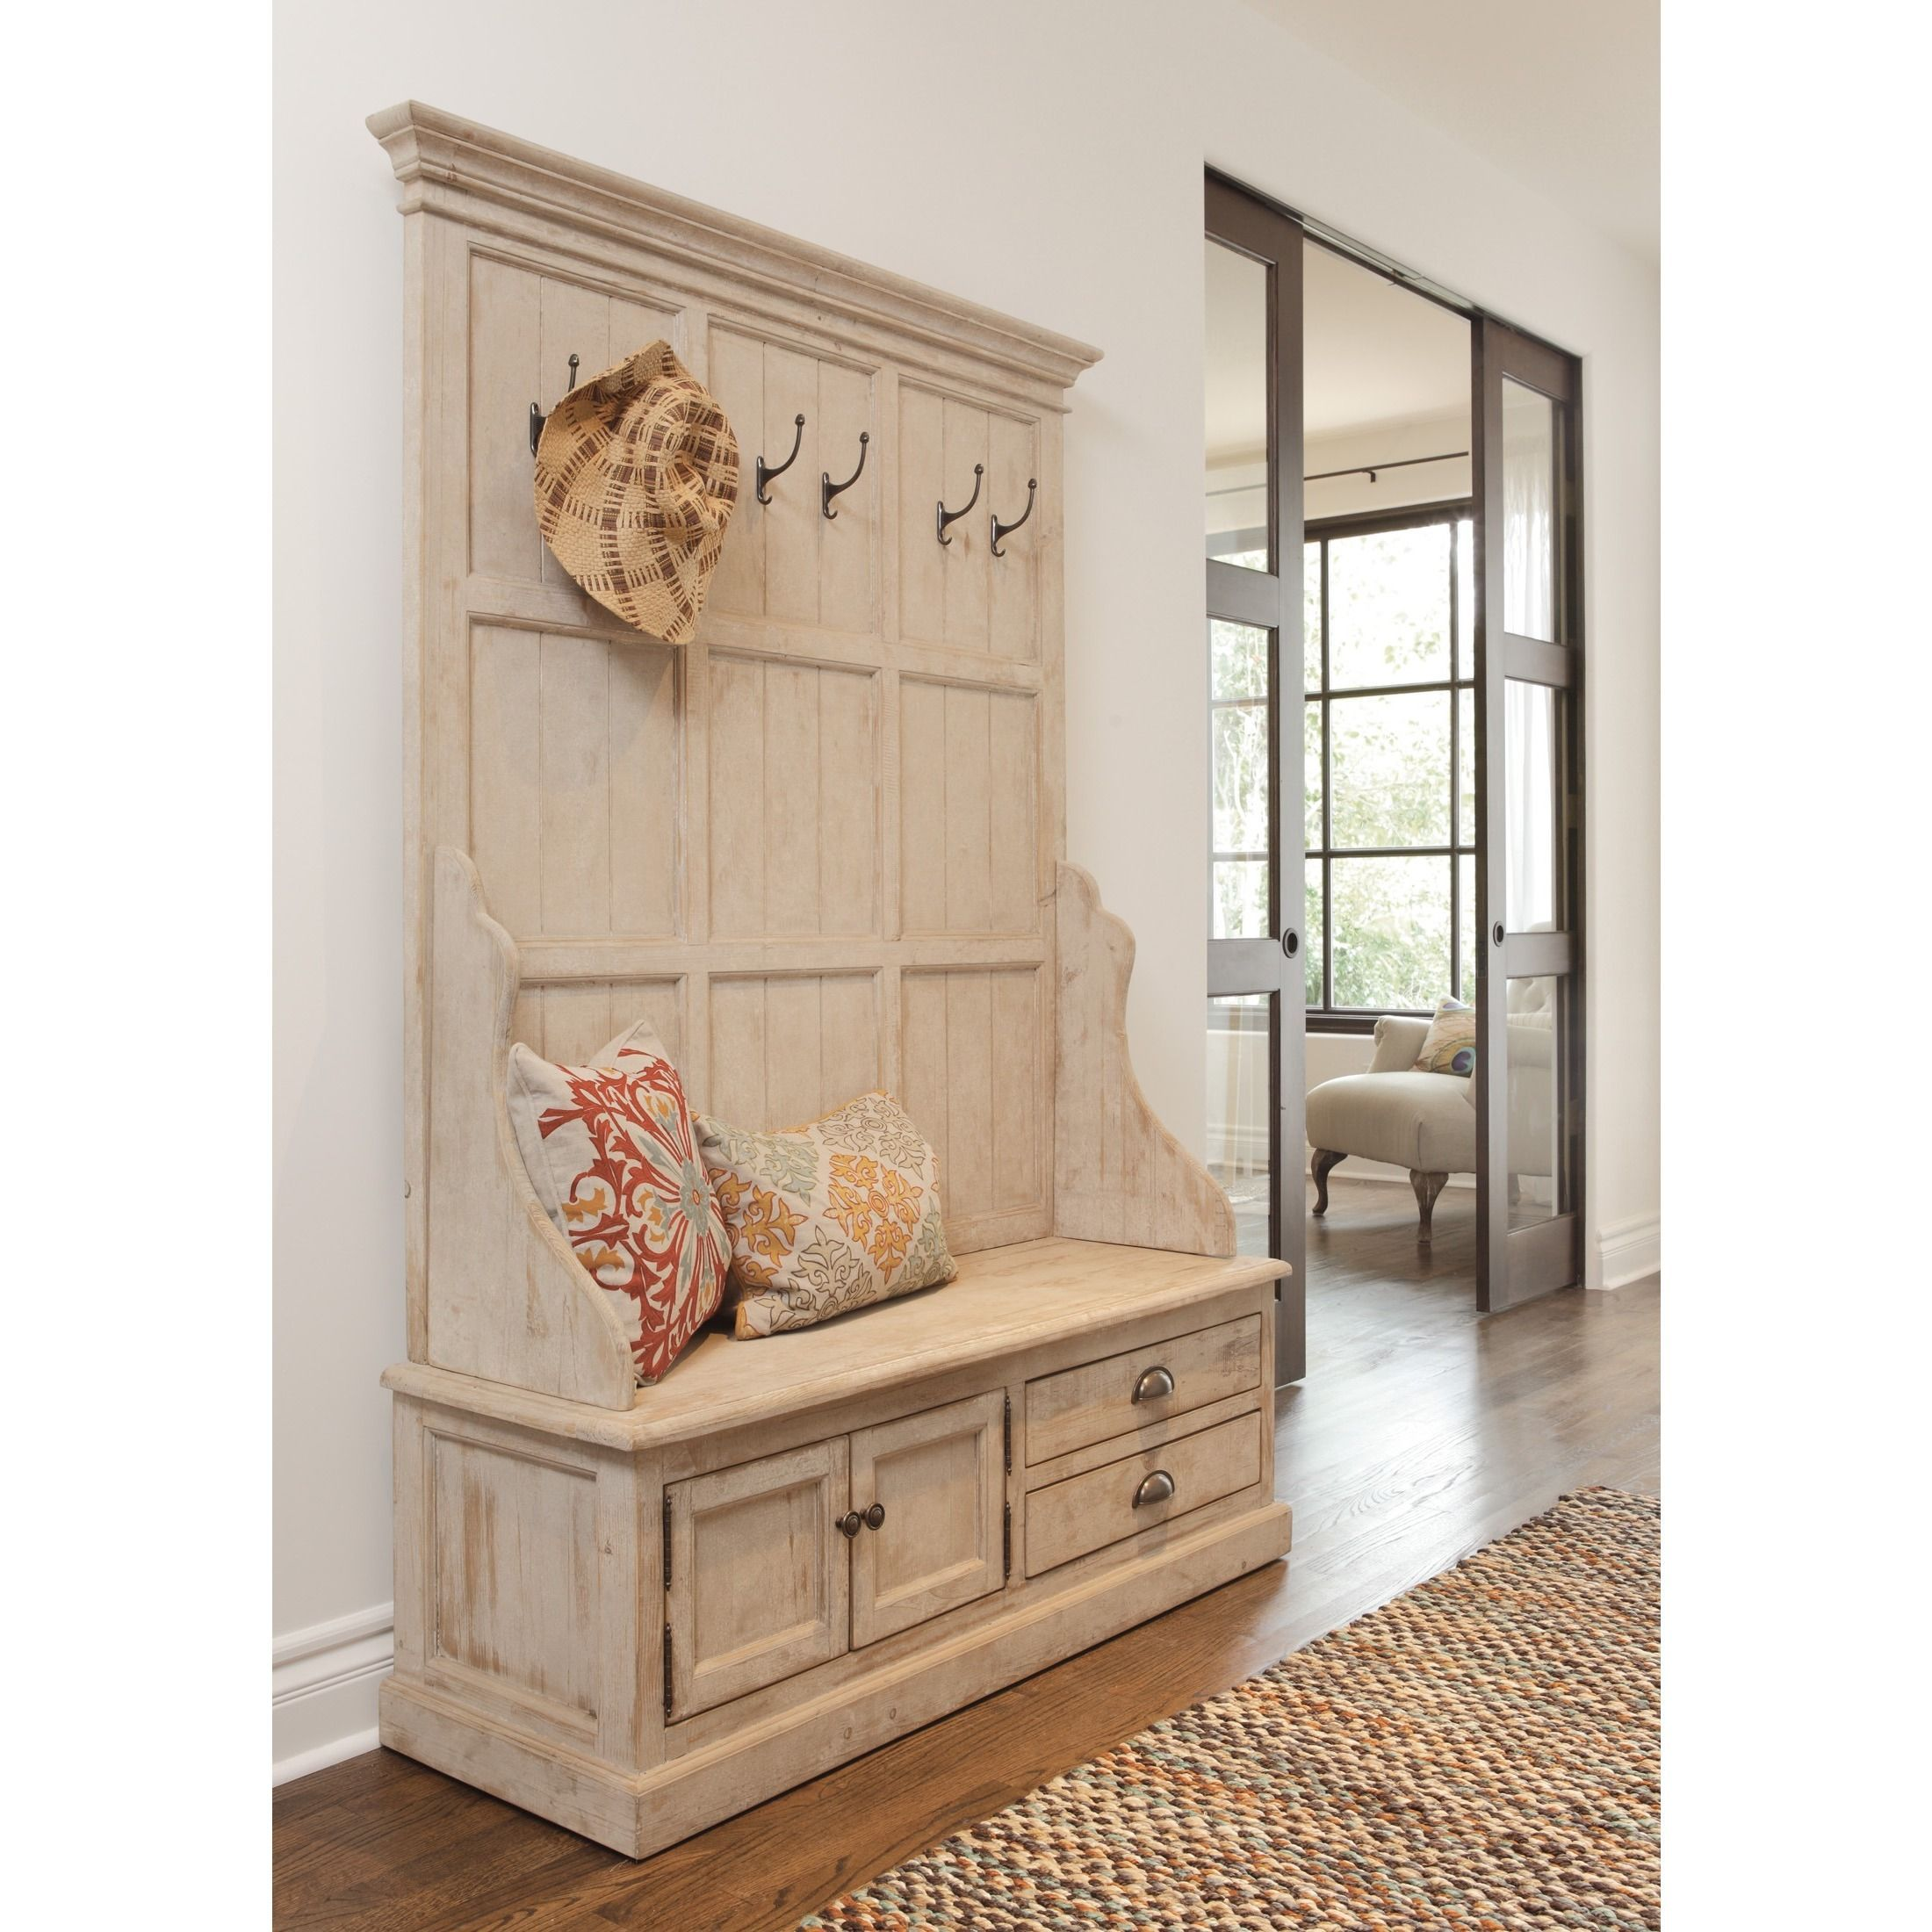 Overstock Com Online Shopping Bedding Furniture Electronics Jewelry Clothing More In 2020 Entryway Bench Storage Home Decor Diy Entryway Bench